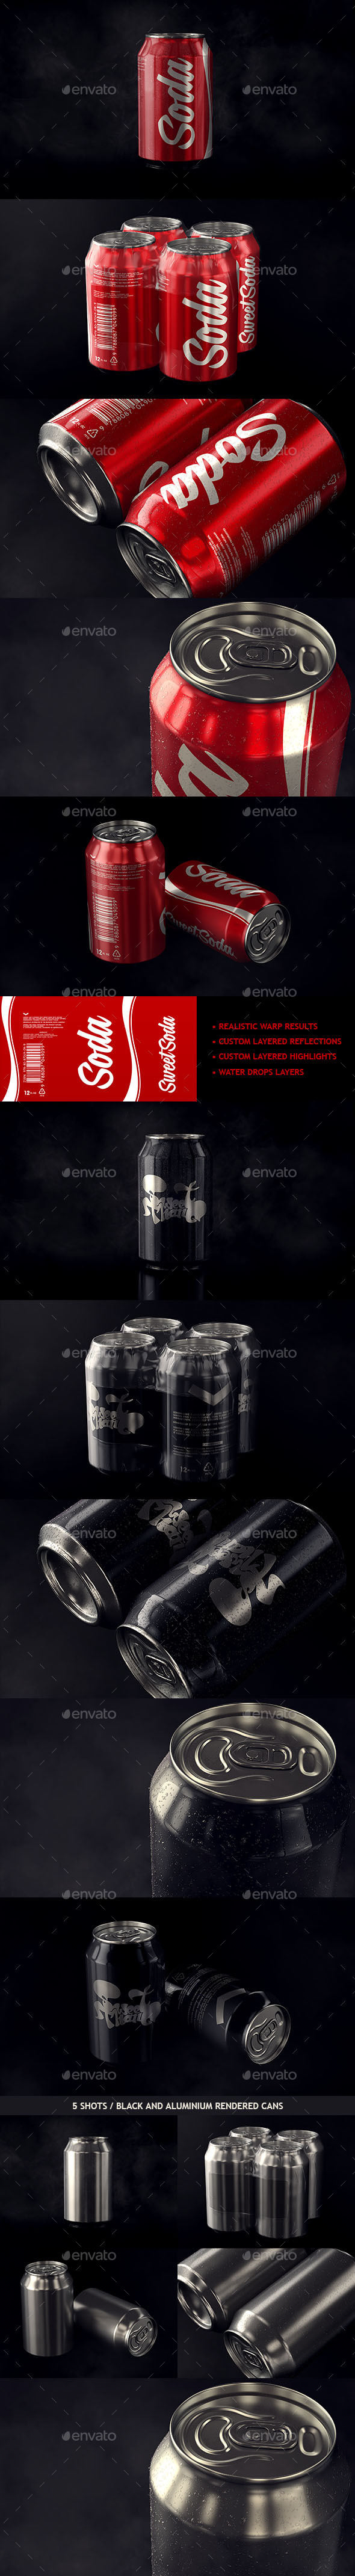 Photorealistic Aluminum Soda Can Mockup - Food and Drink Packaging